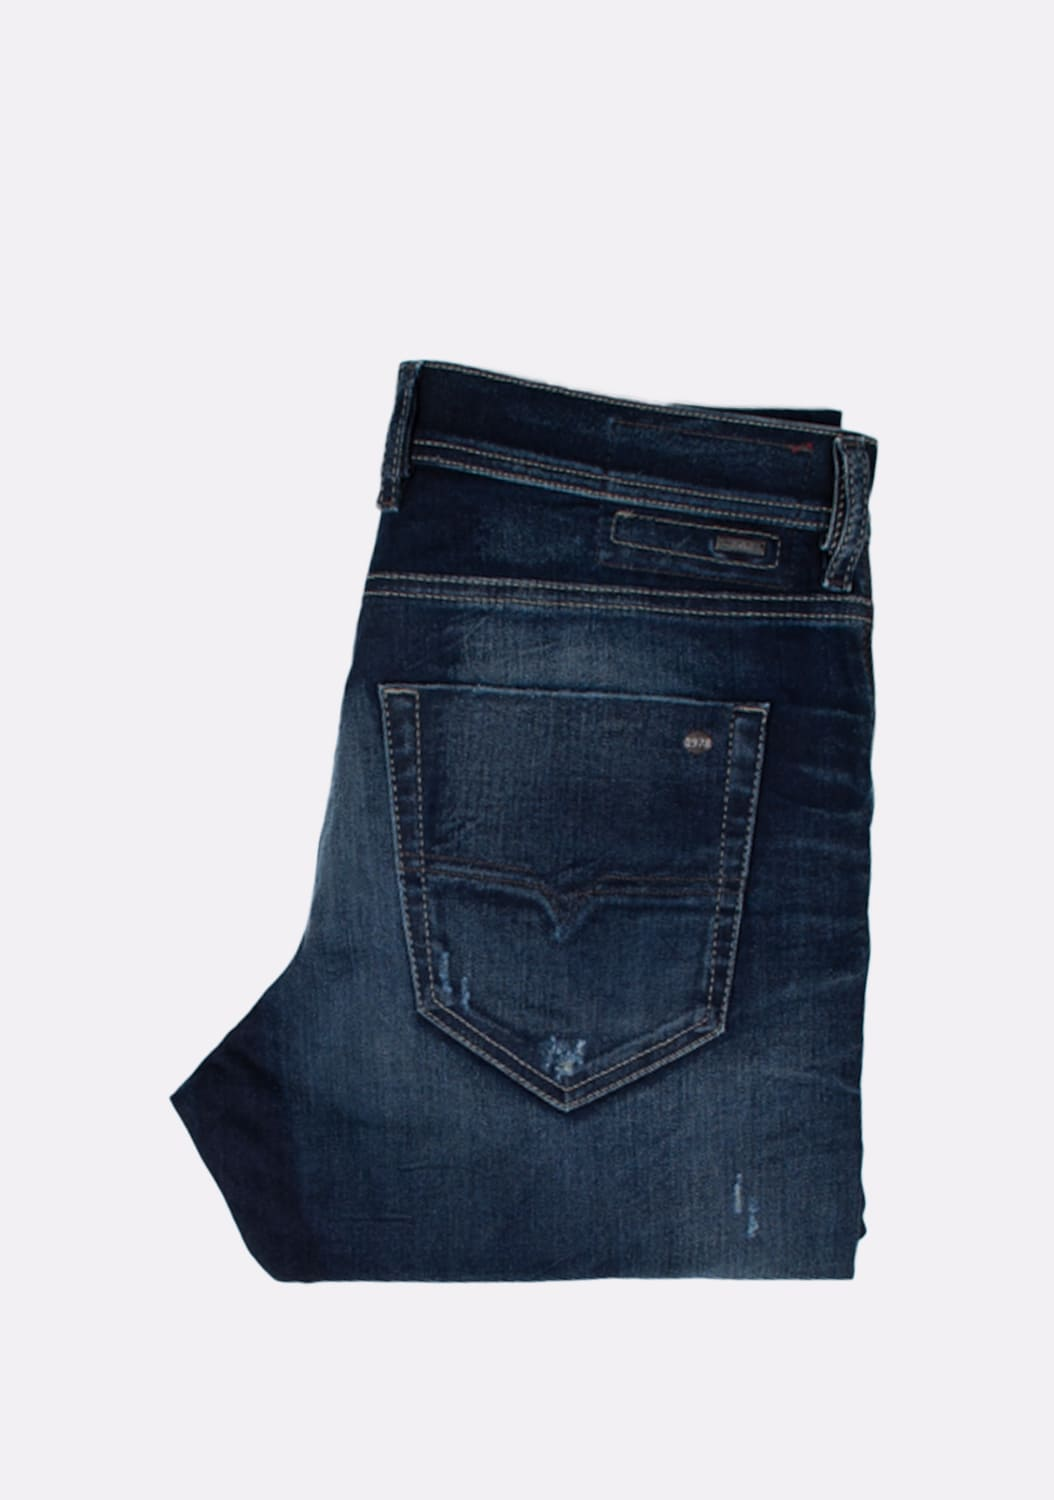 Diesel-Tepphar-0844T-Stretch-Slim-Carrot-dzinsai-dydis 34-30 (1)